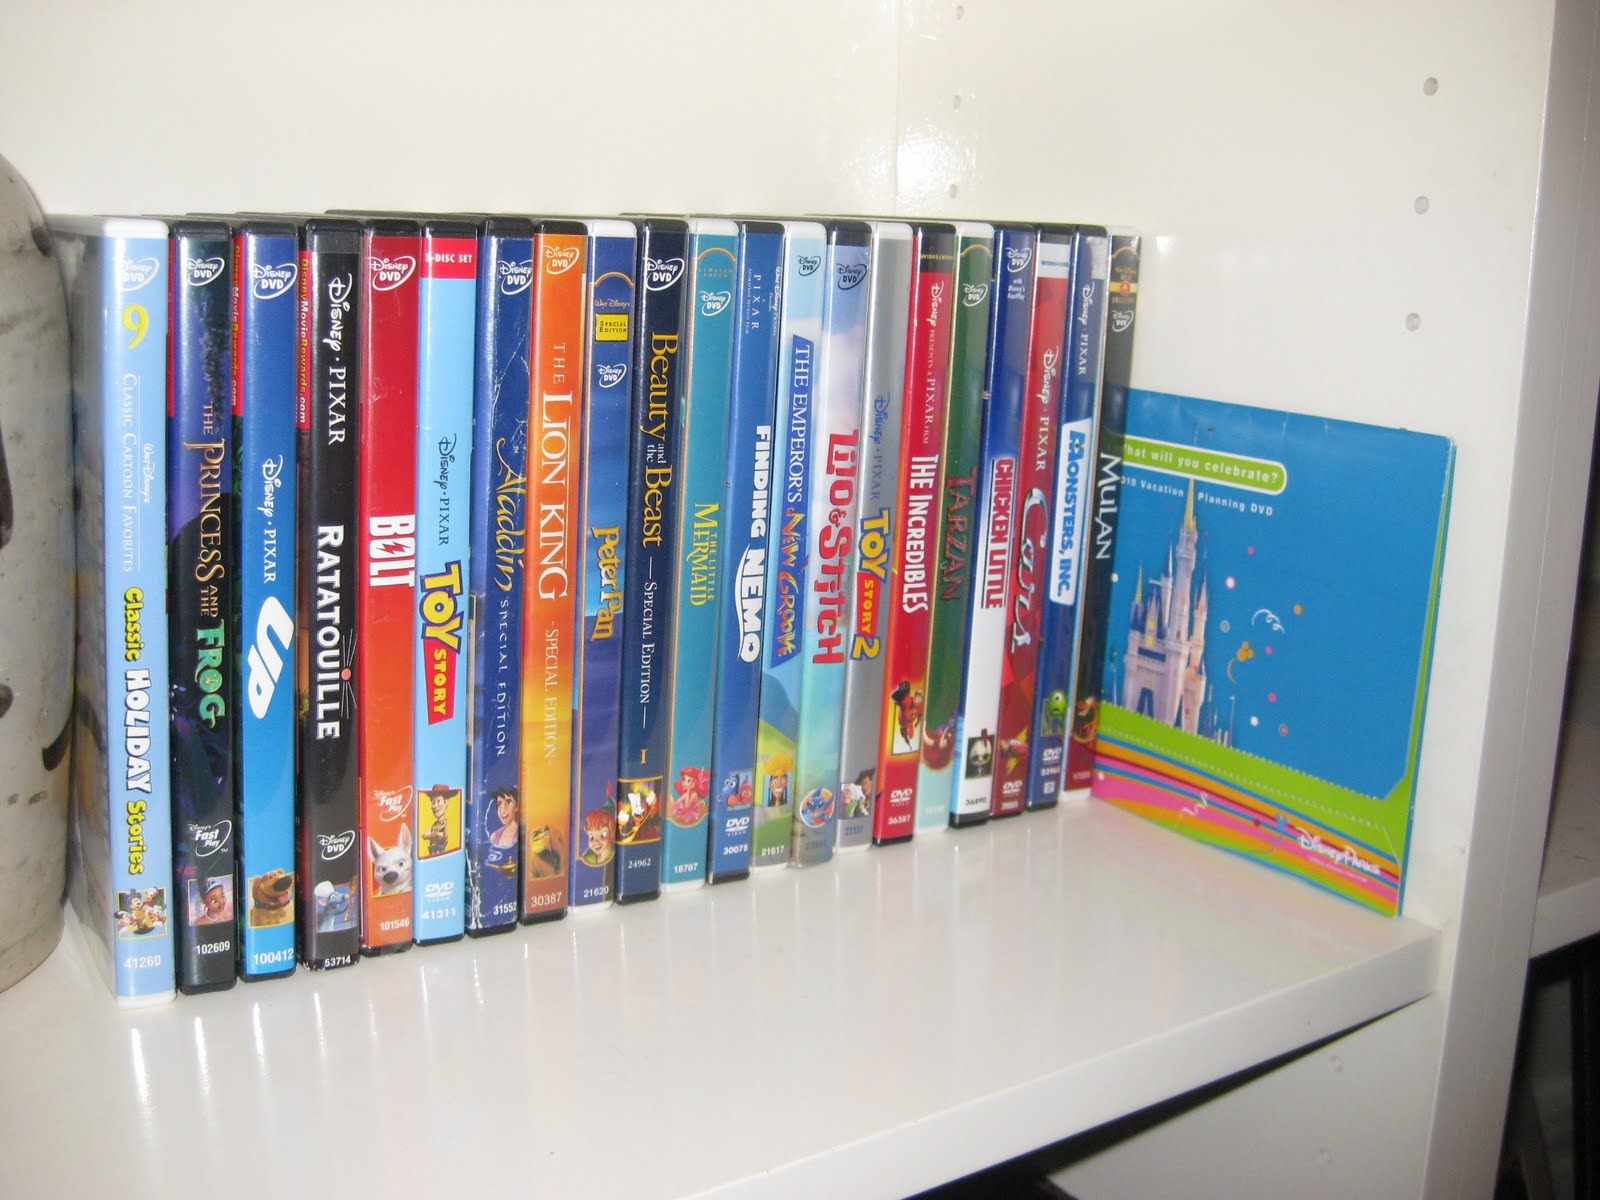 4 Square Dvd Pictures to Pin on Pinterest - PinsDaddy